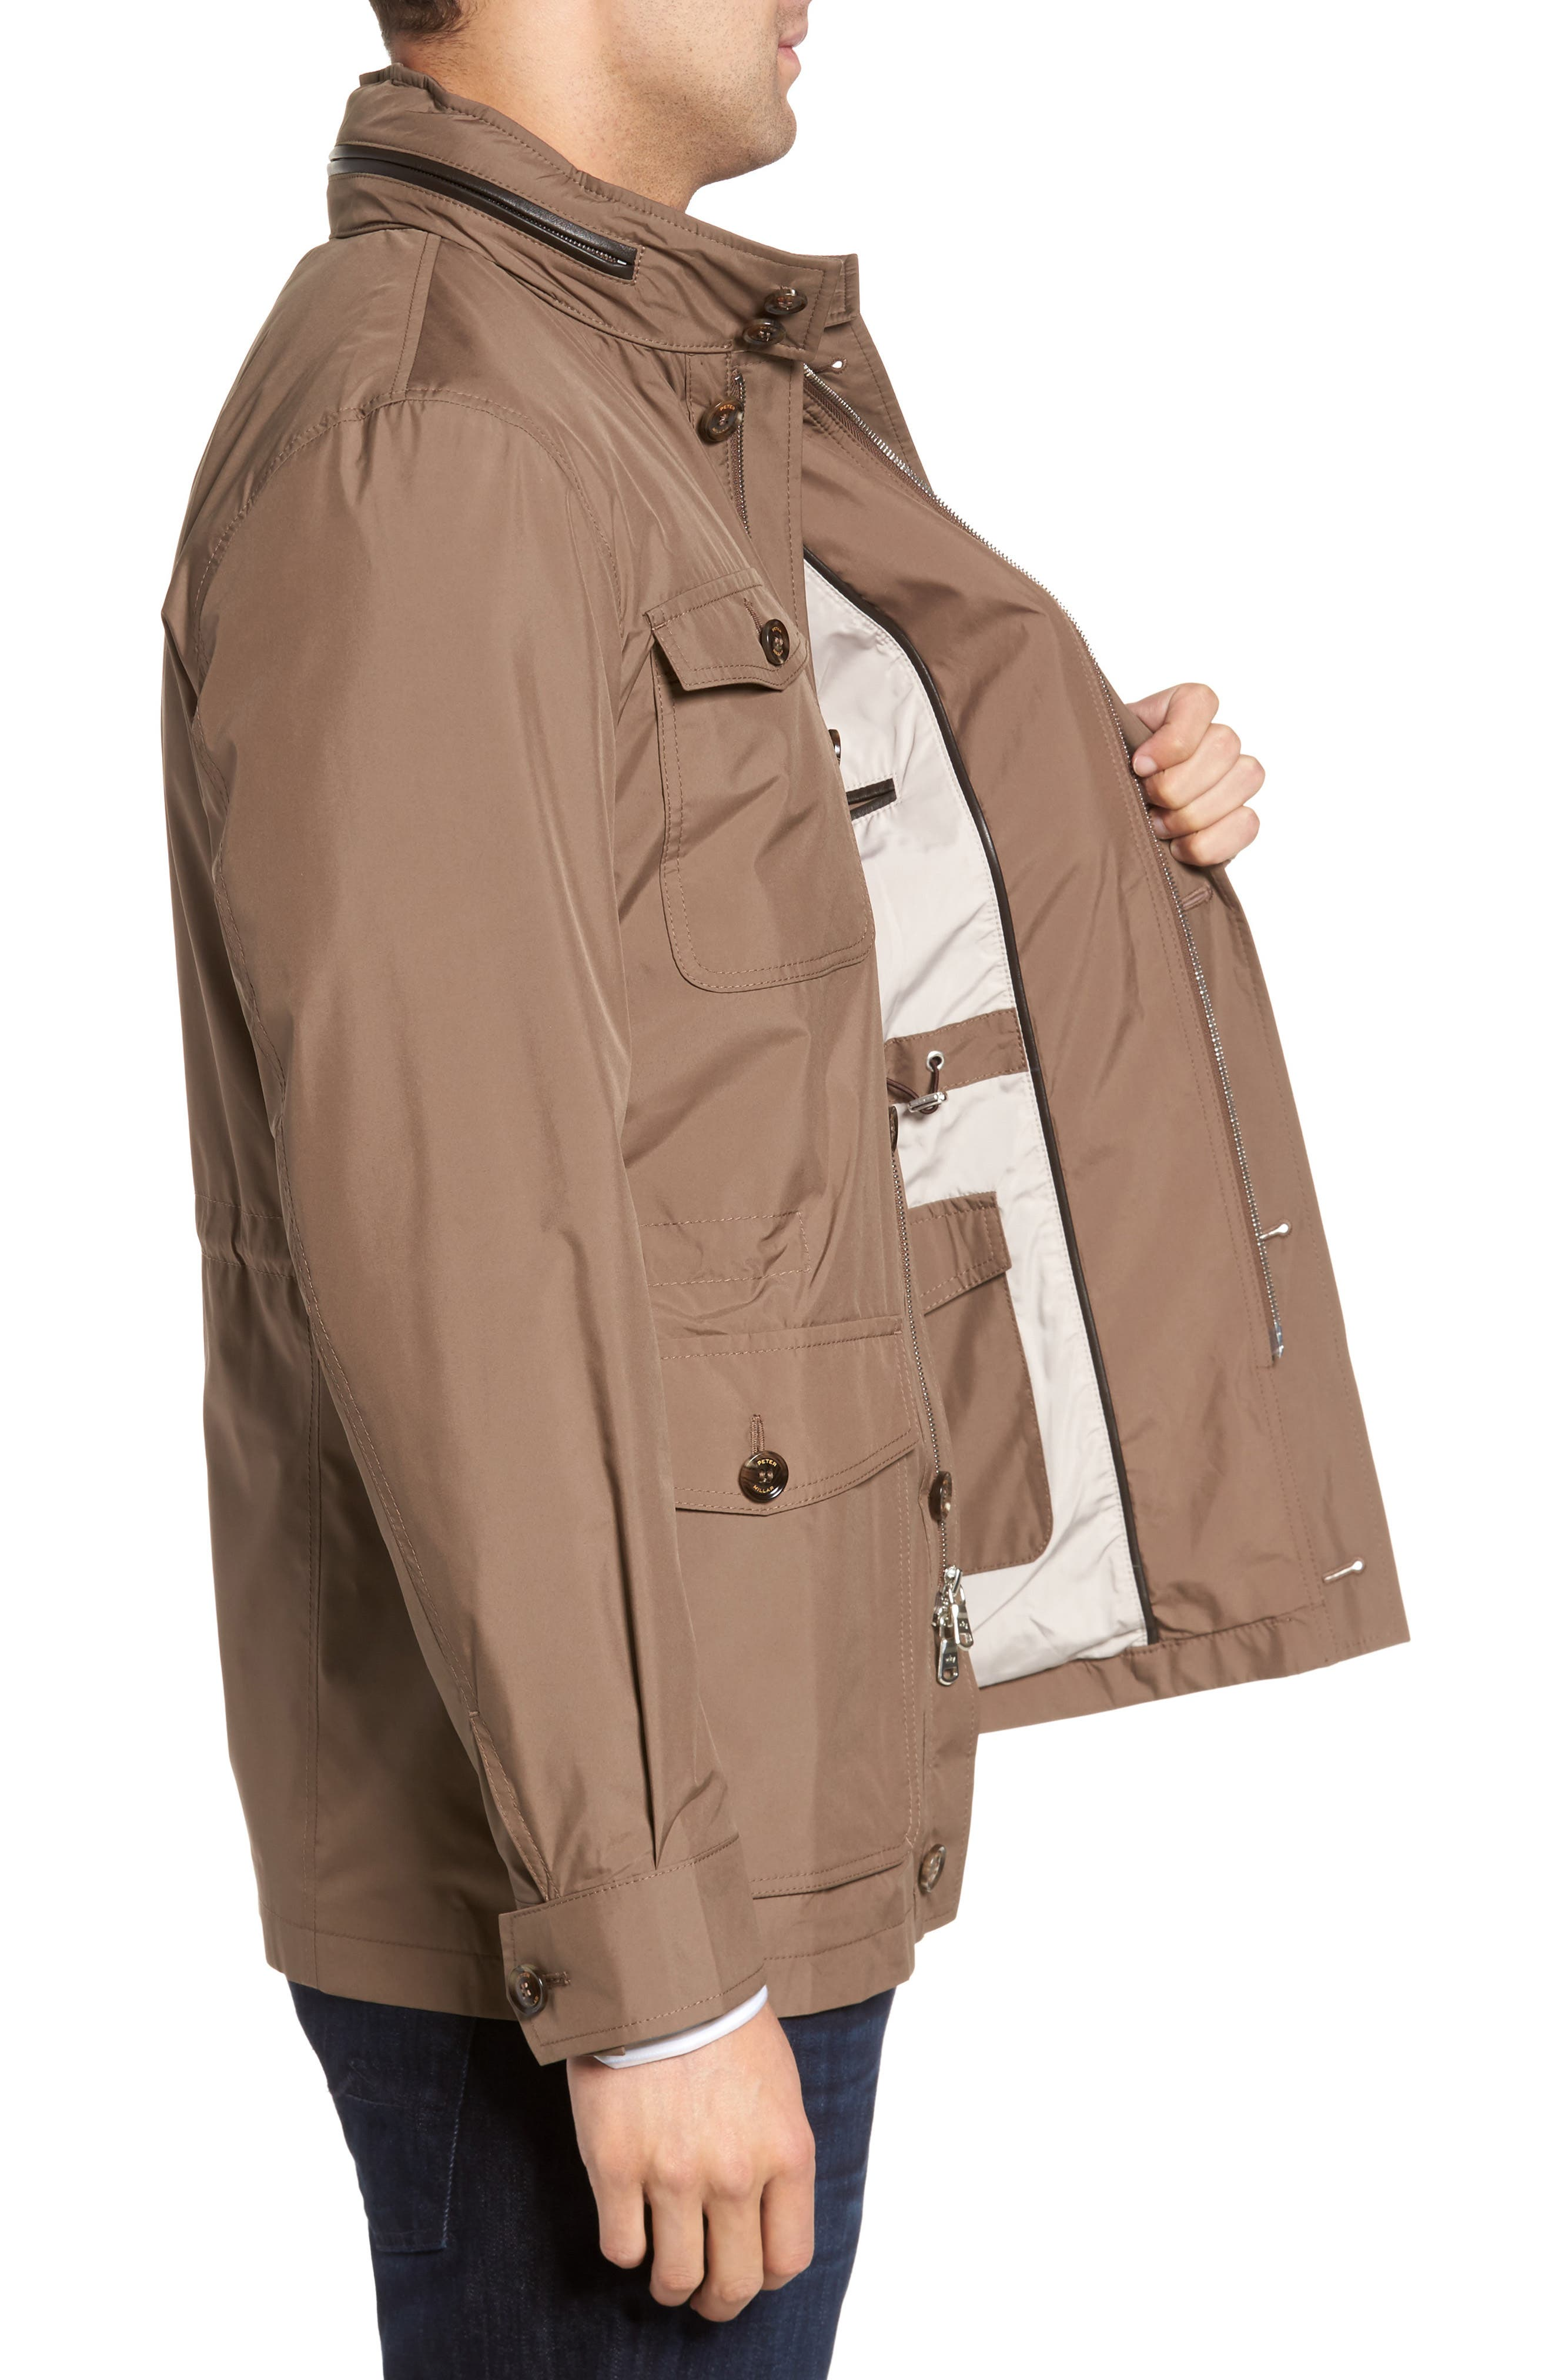 All Weather Discovery Jacket,                             Alternate thumbnail 3, color,                             240